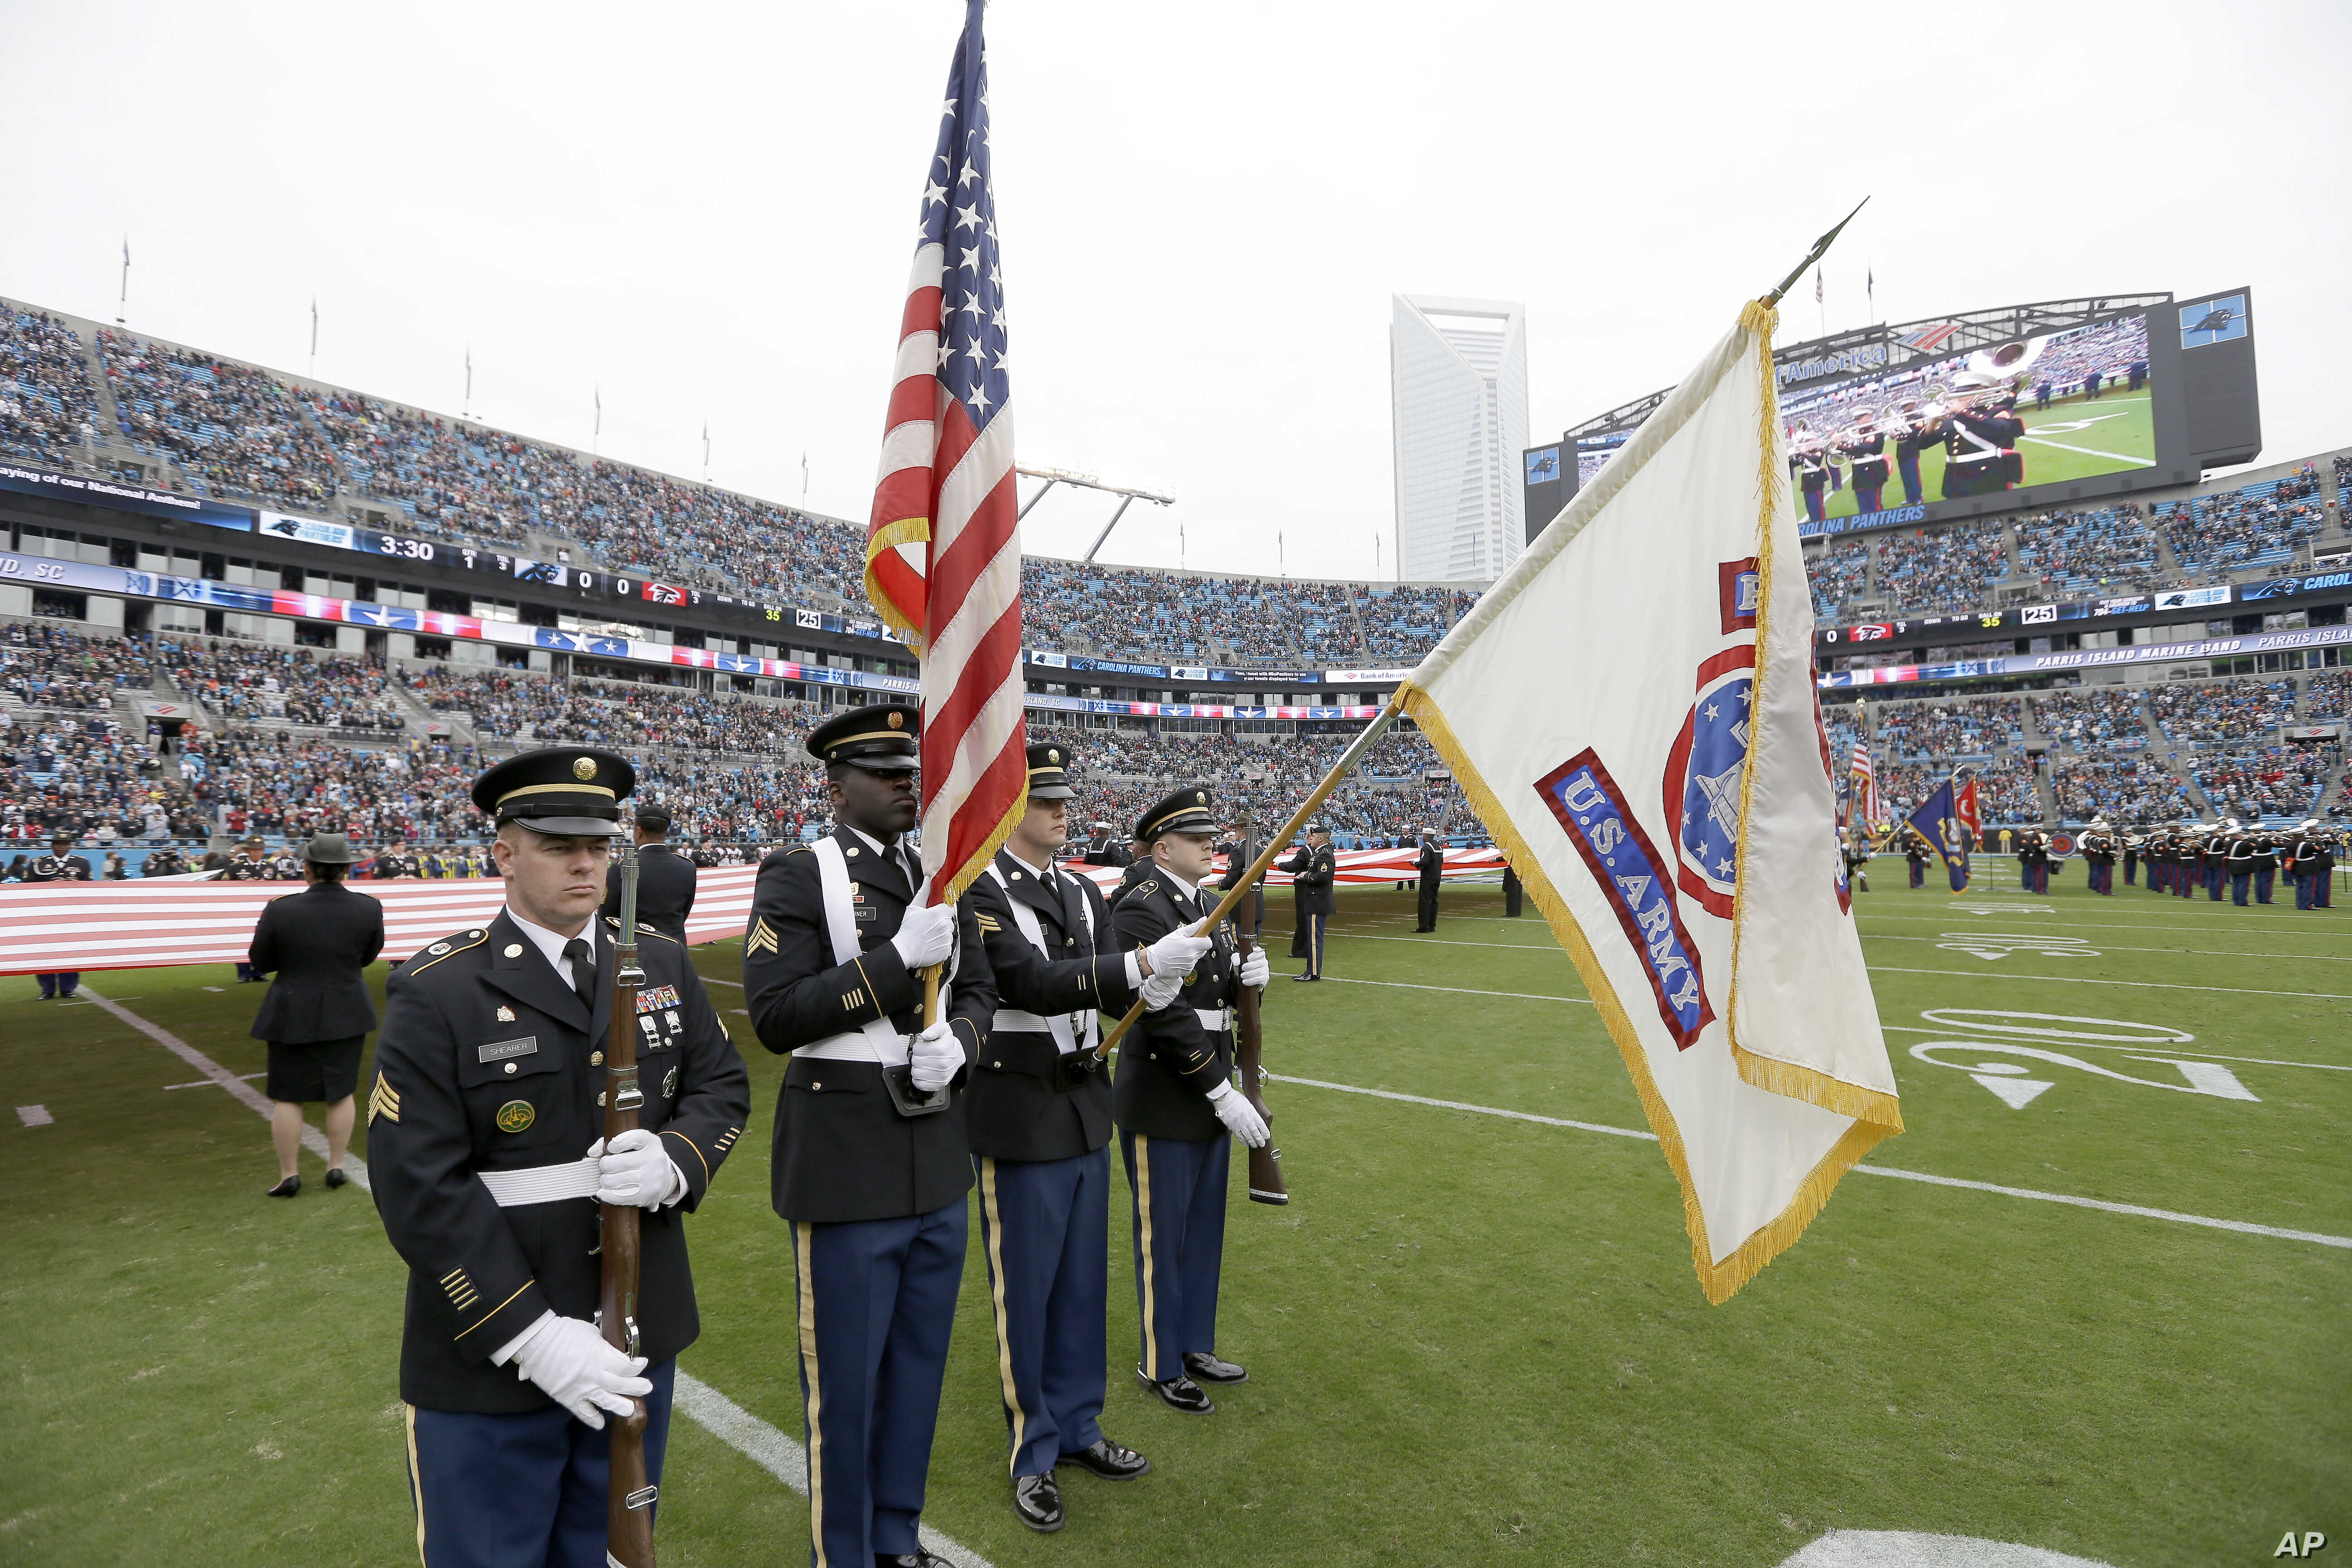 FILE - Members of the U.S. Army color guard join color guards from other military services for the National Anthem before an NFL football game between the Atlanta Falcons and Carolina Panthers in Charlotte, N.C., Nov. 16, 2014.